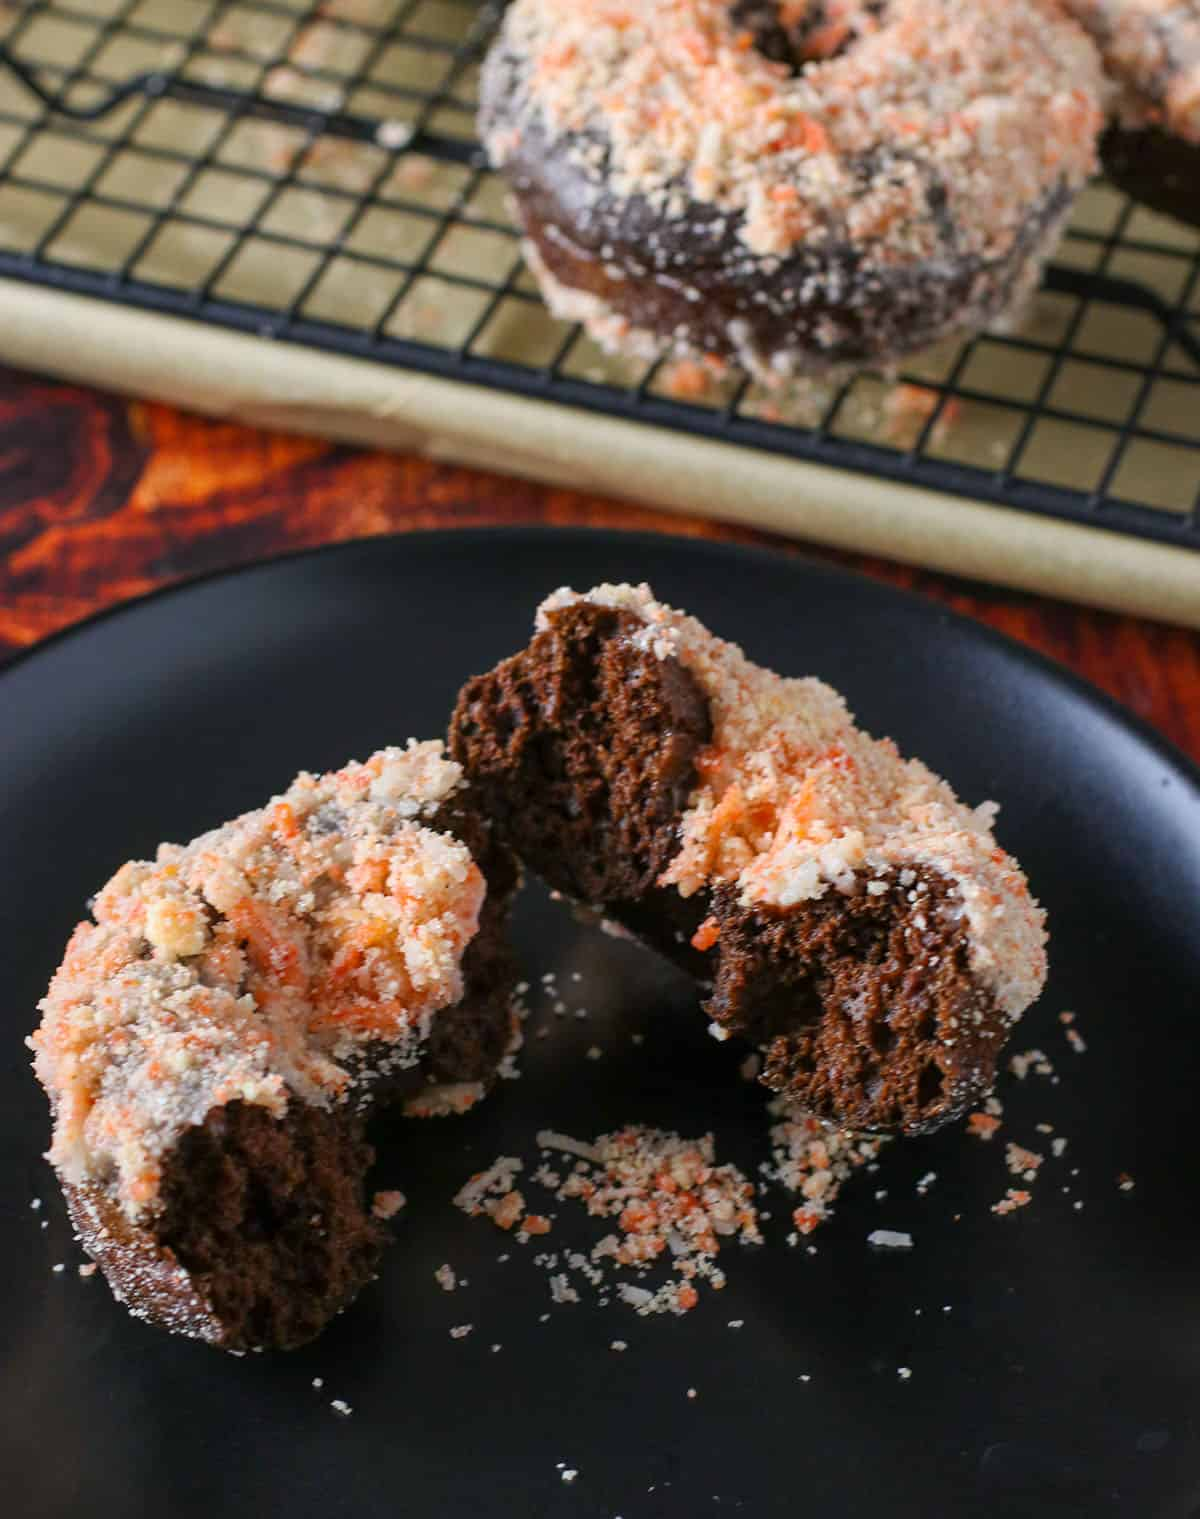 Choco butternut donut, cut in half showing the interior of the donut.